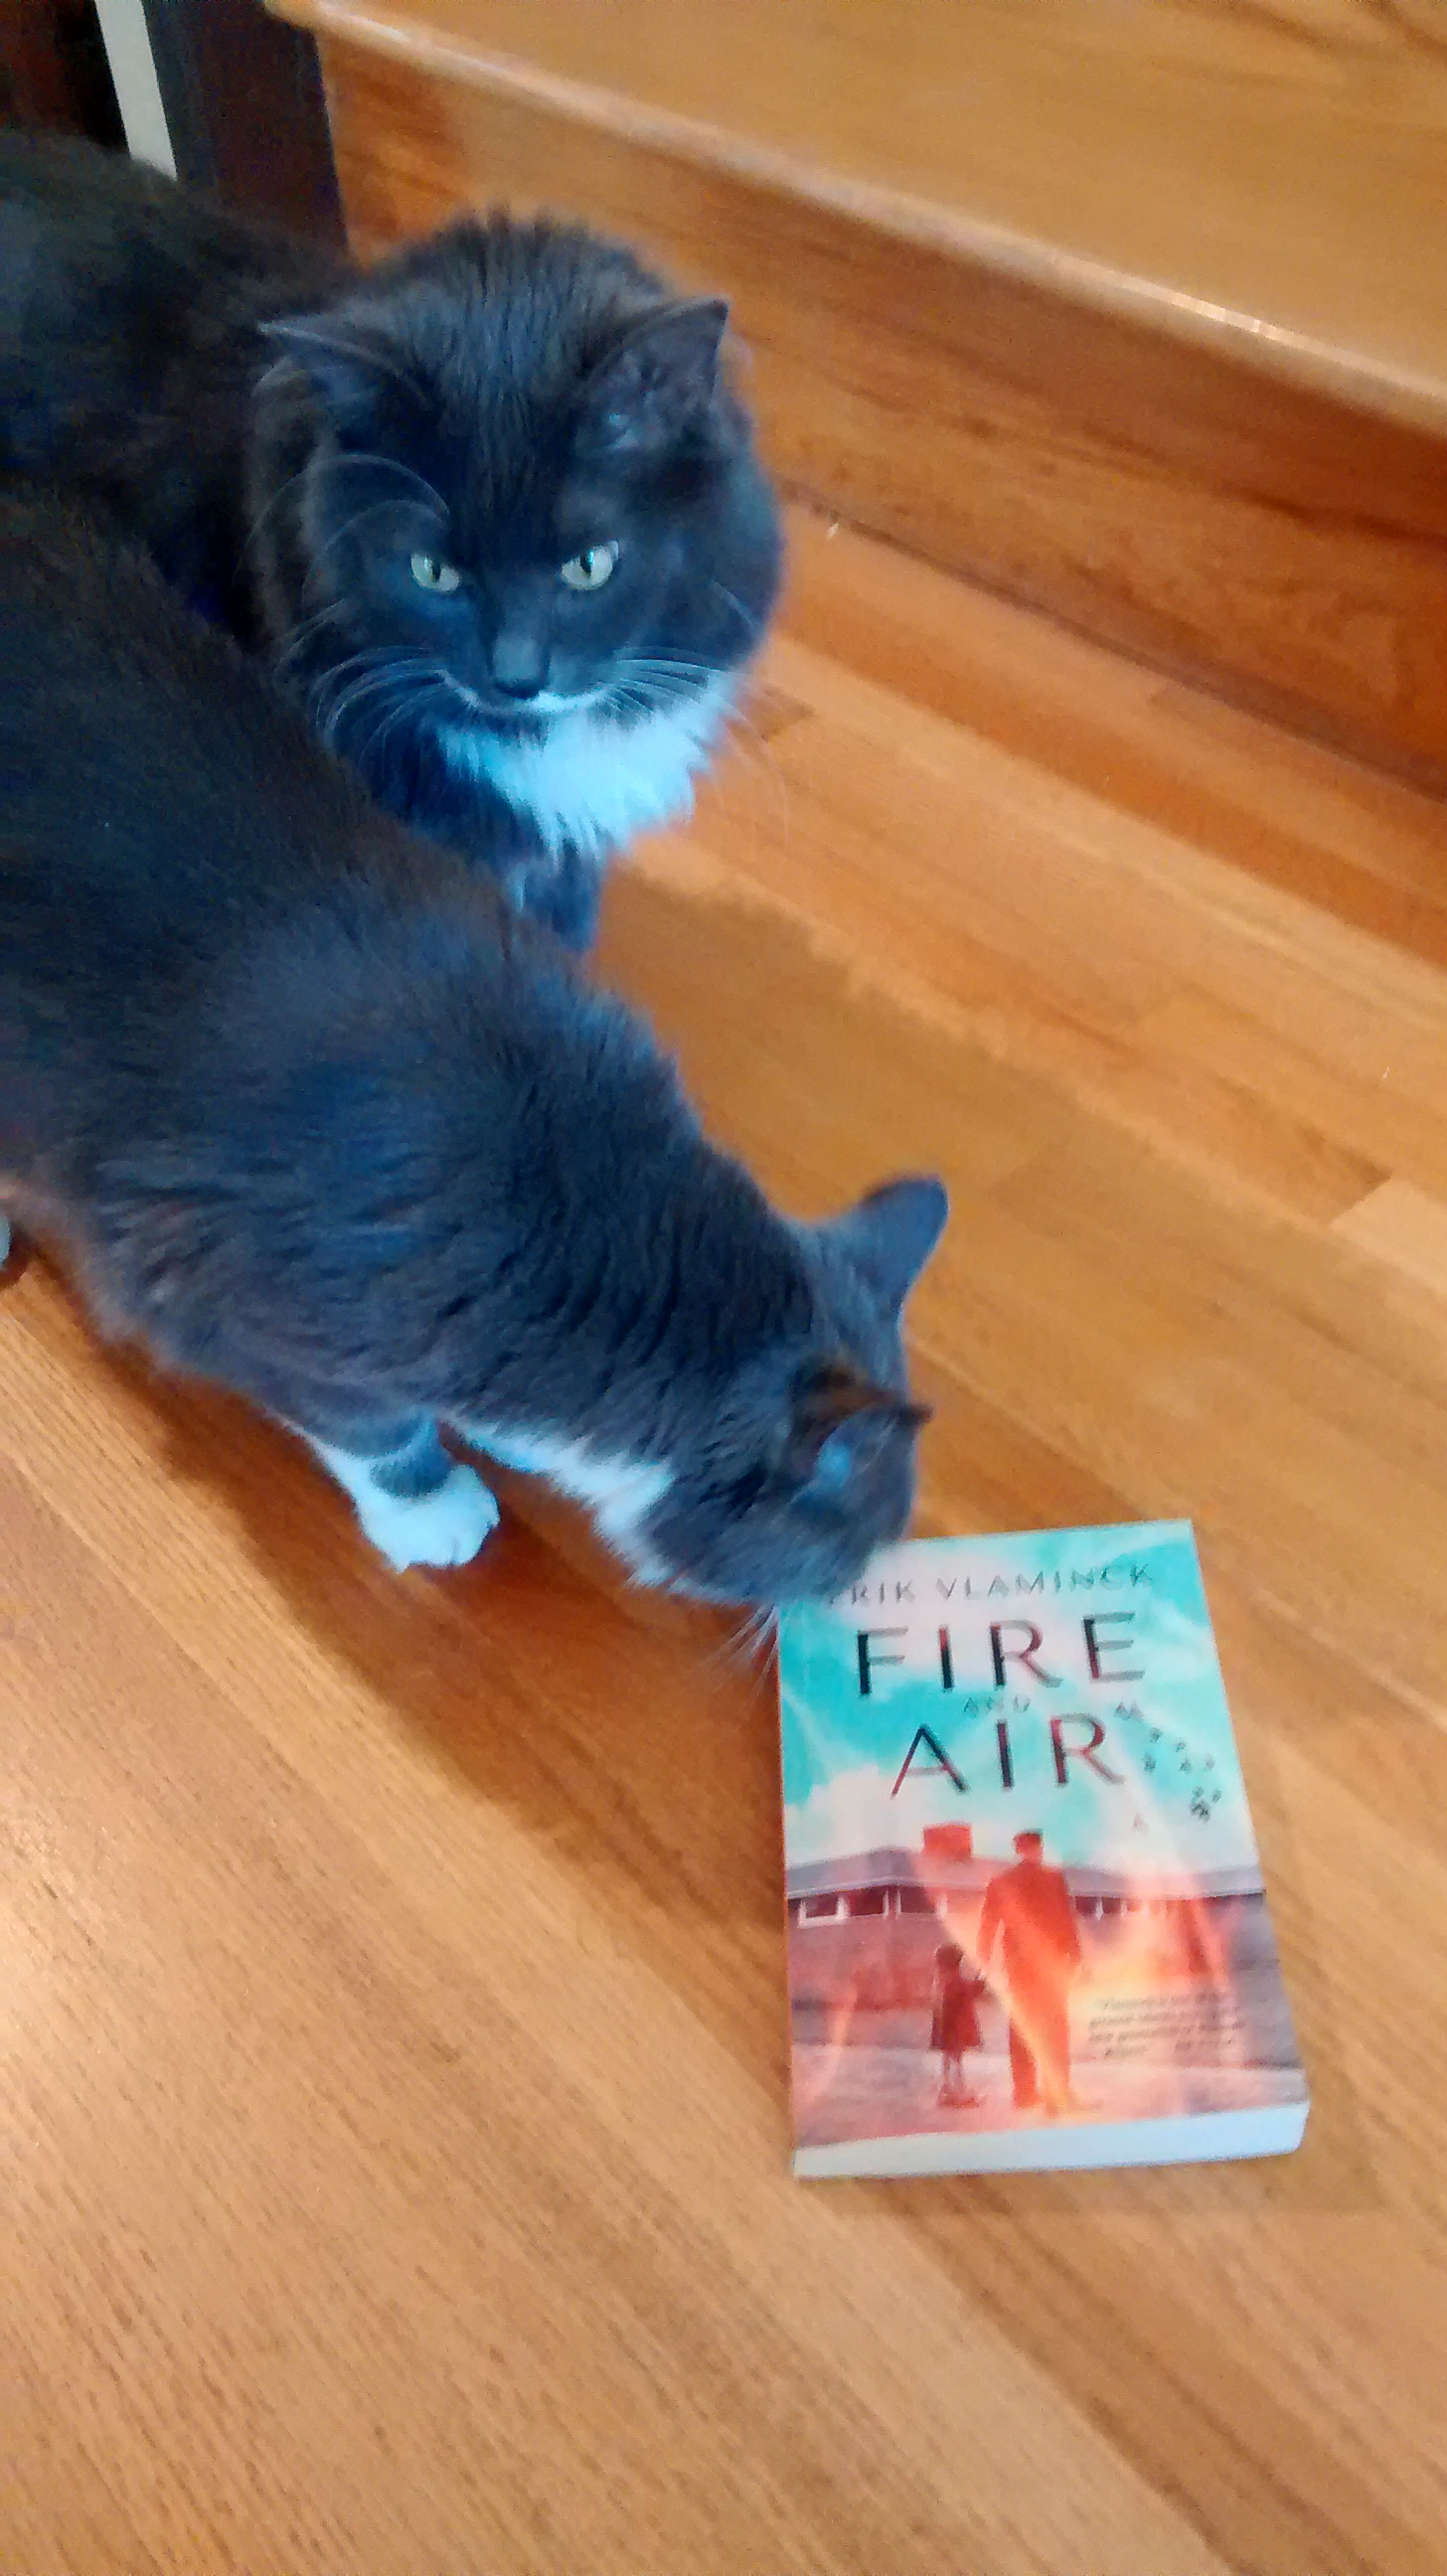 Smokey was ambivalent about this book, but Pearl was willing to take a look